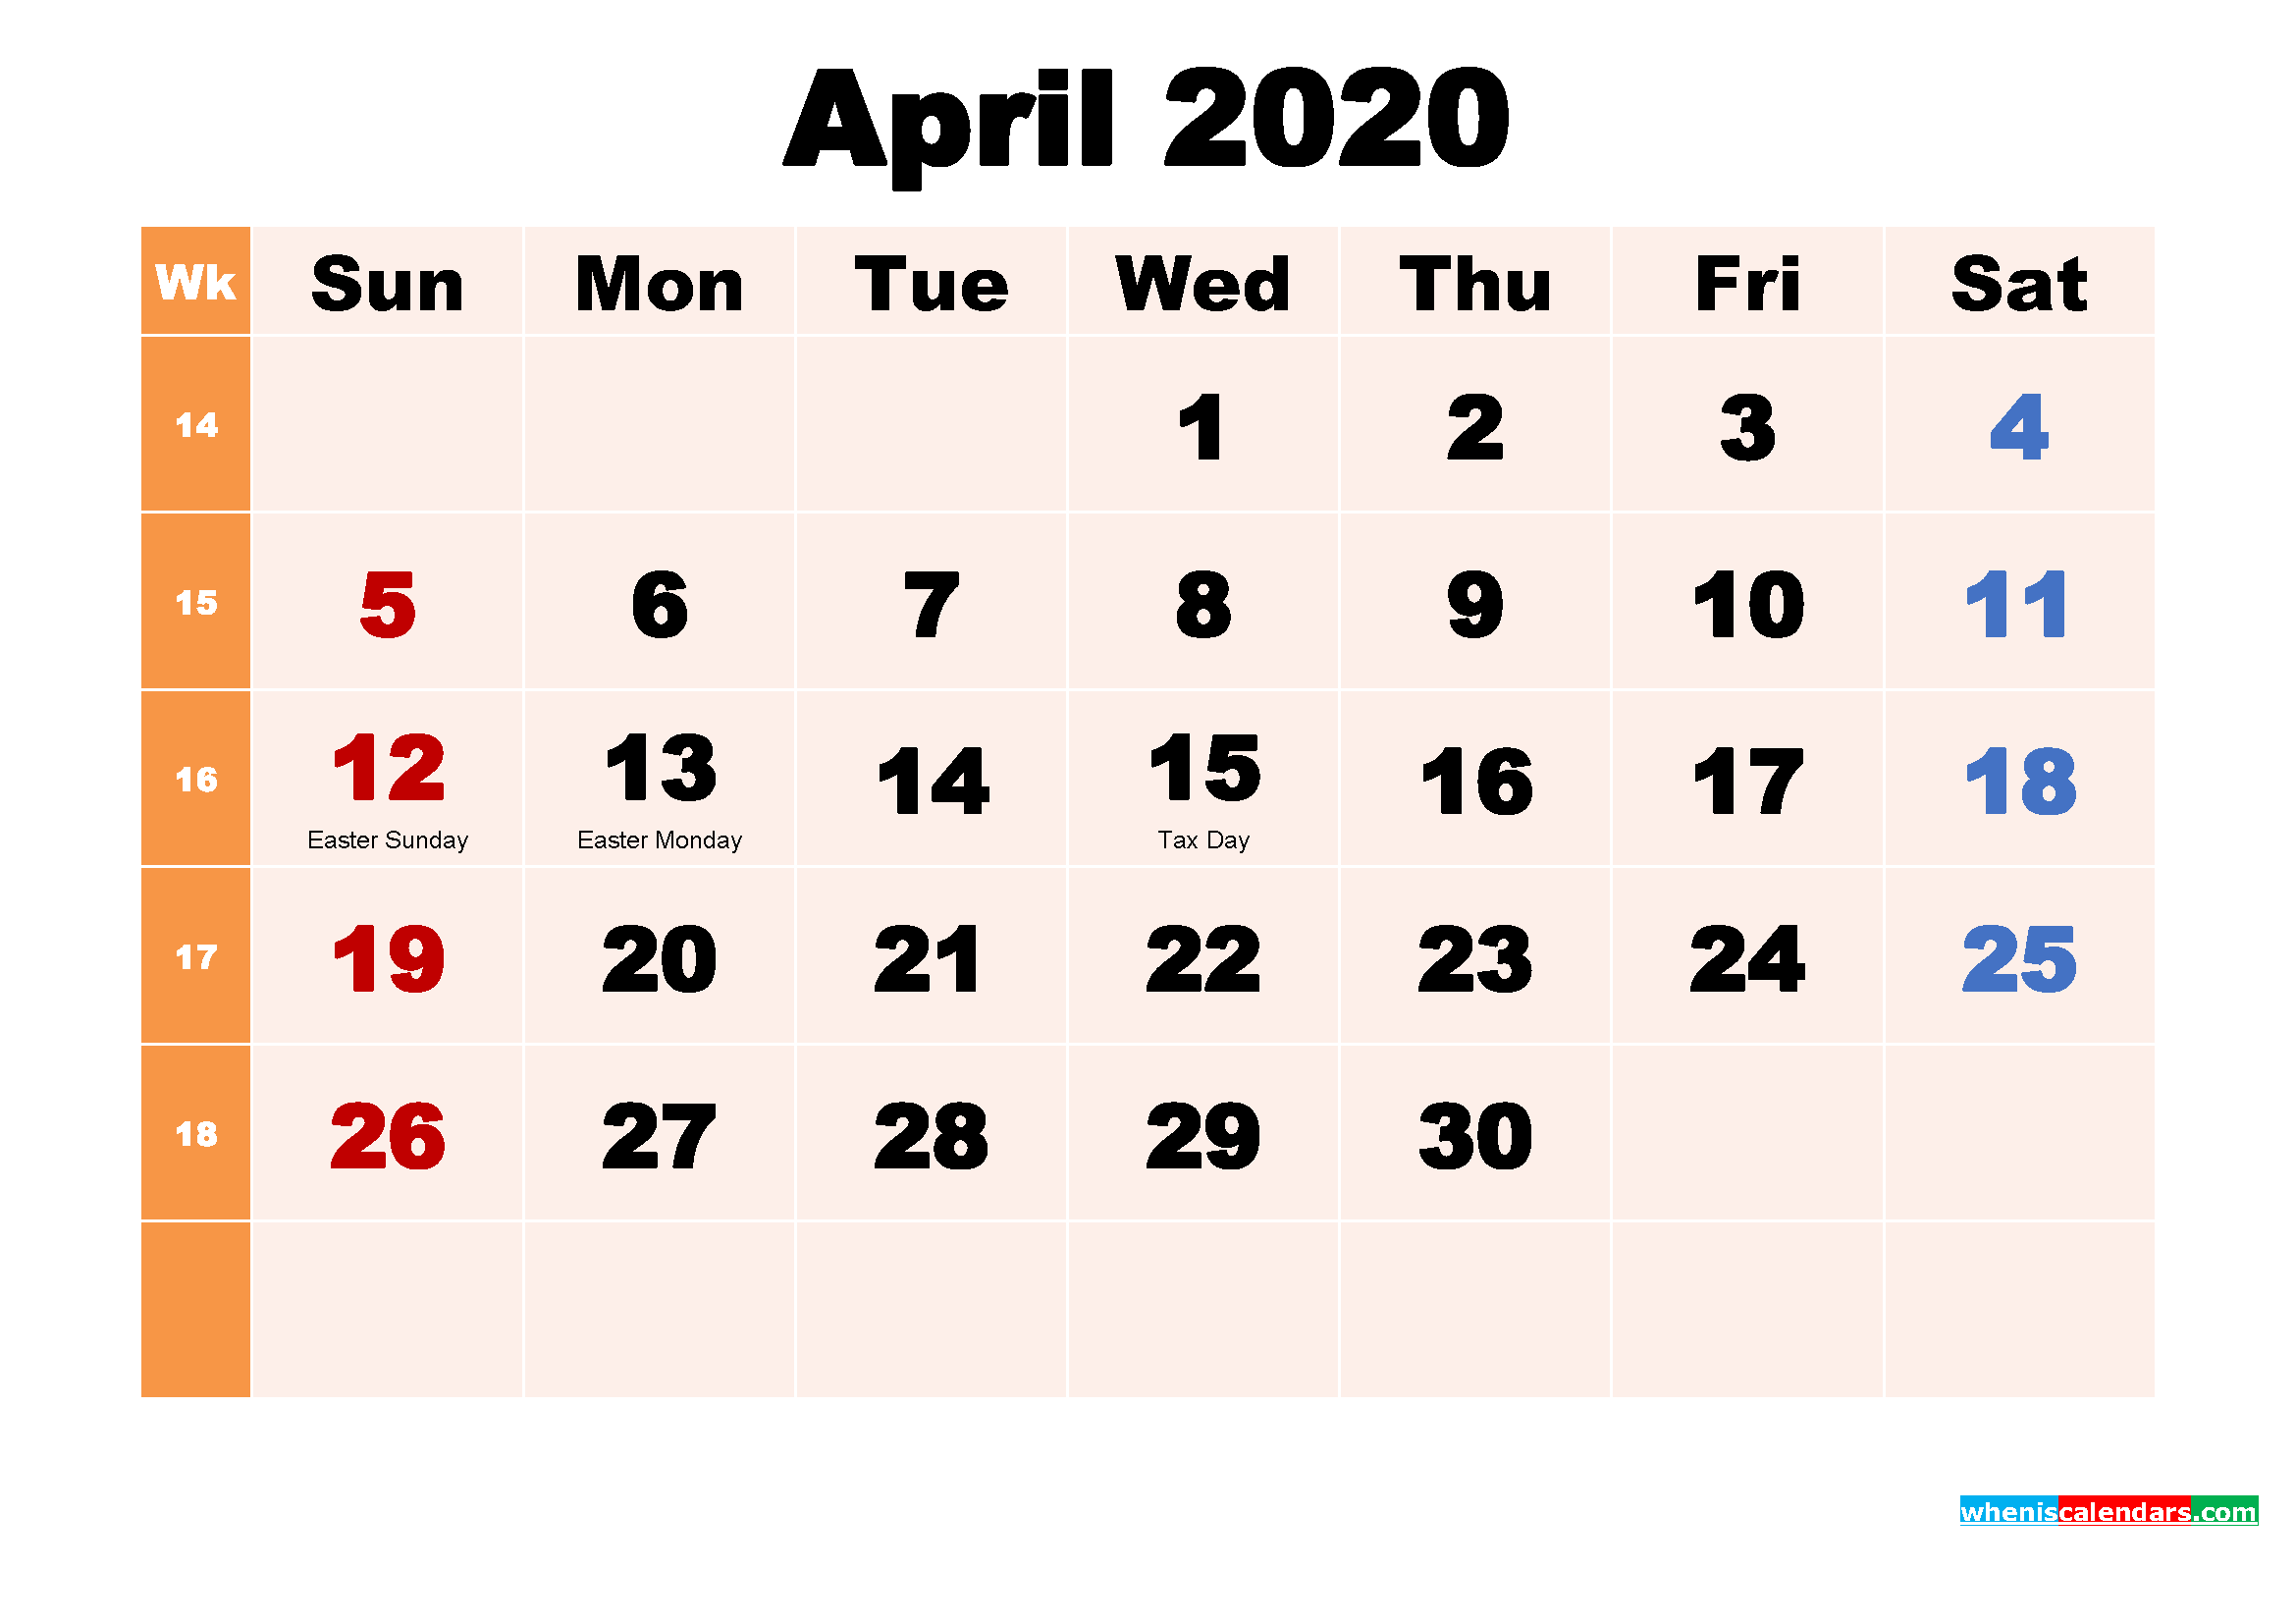 April 2020 Calendar Wallpaper Free Download